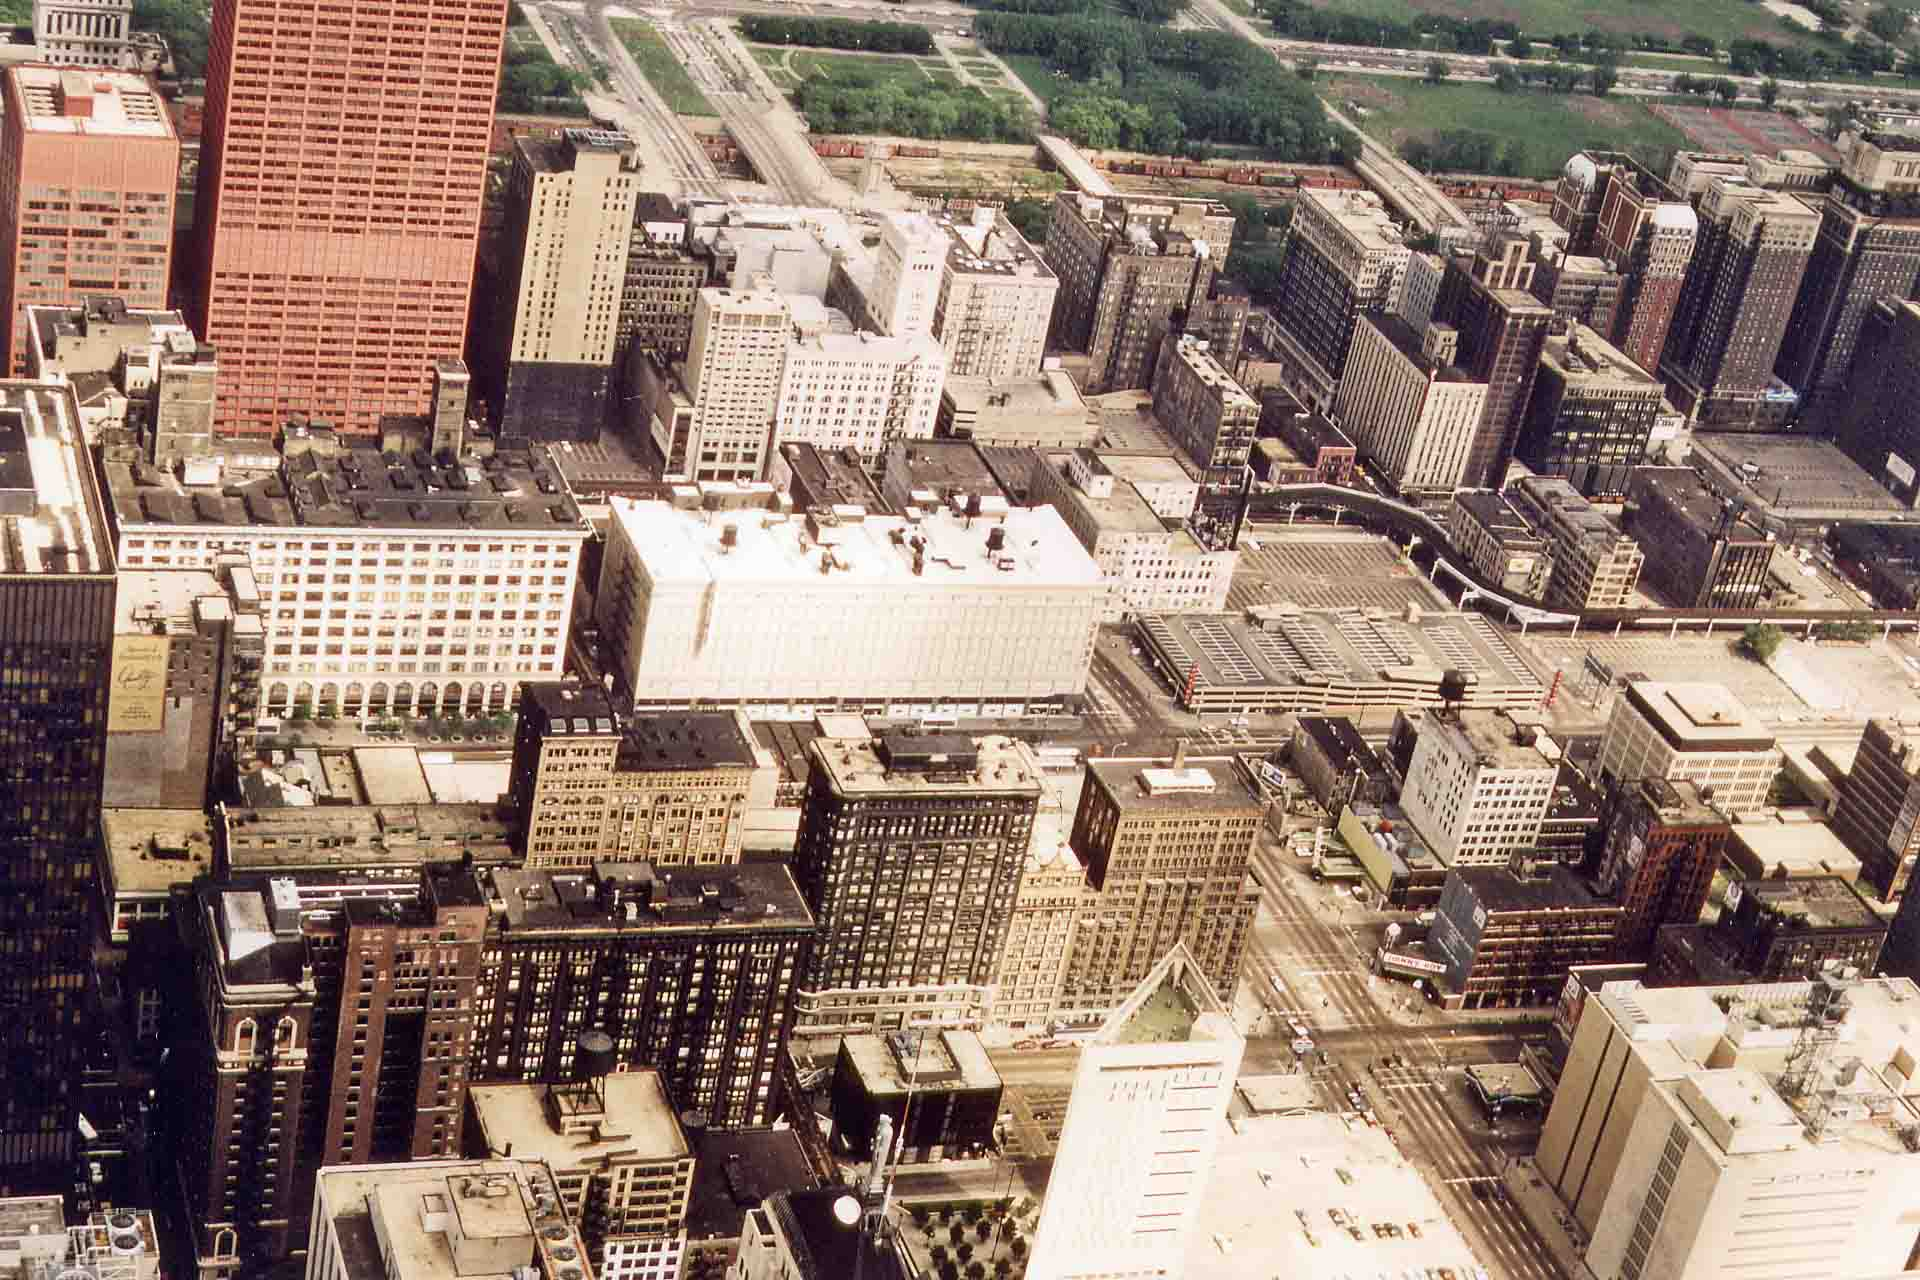 View from the Sears Tower in Chicago in 1981